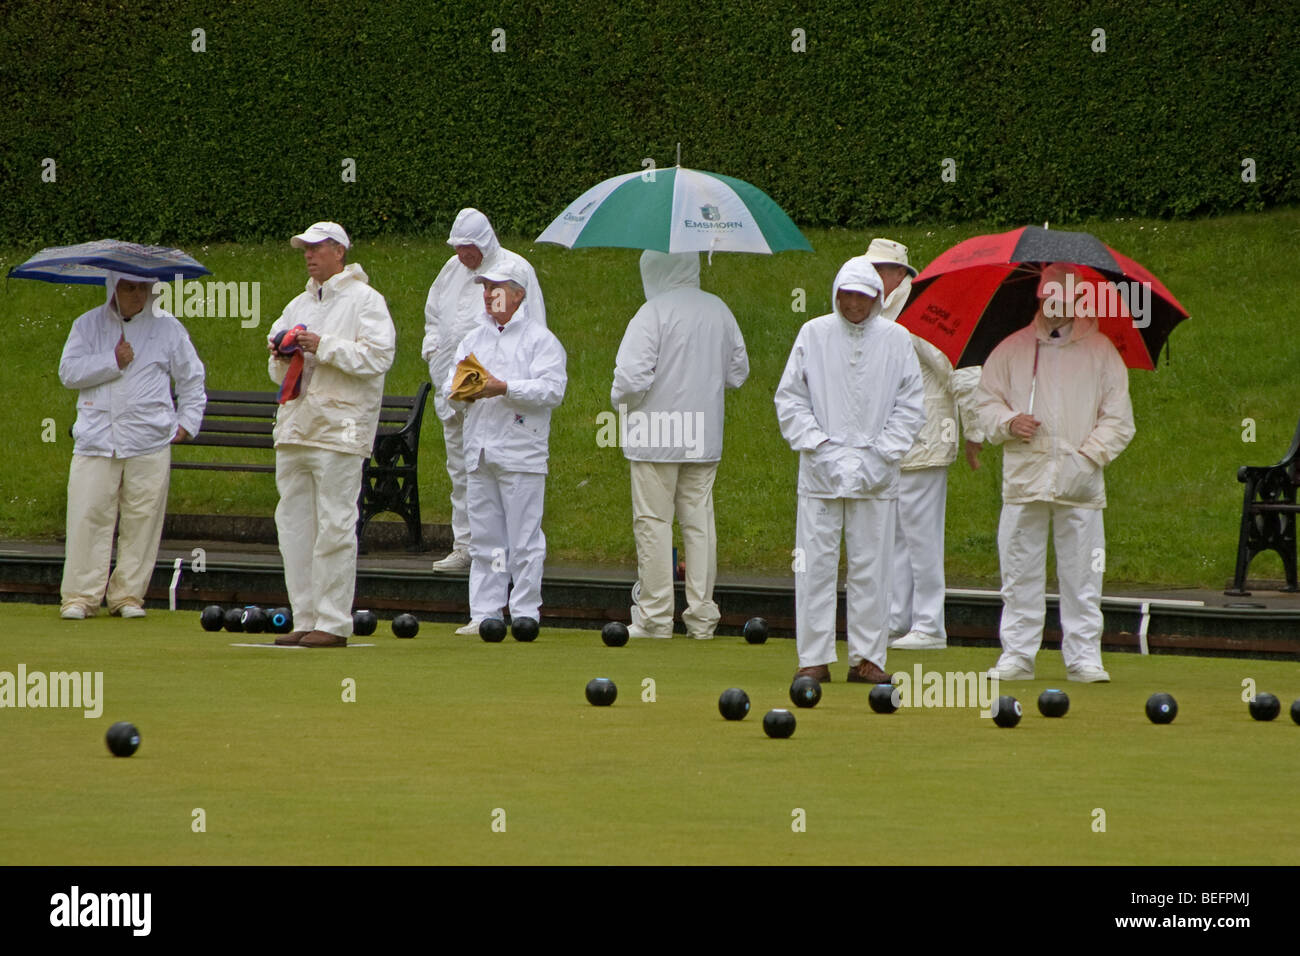 Lawn Bowls Played in Rain - Stock Image